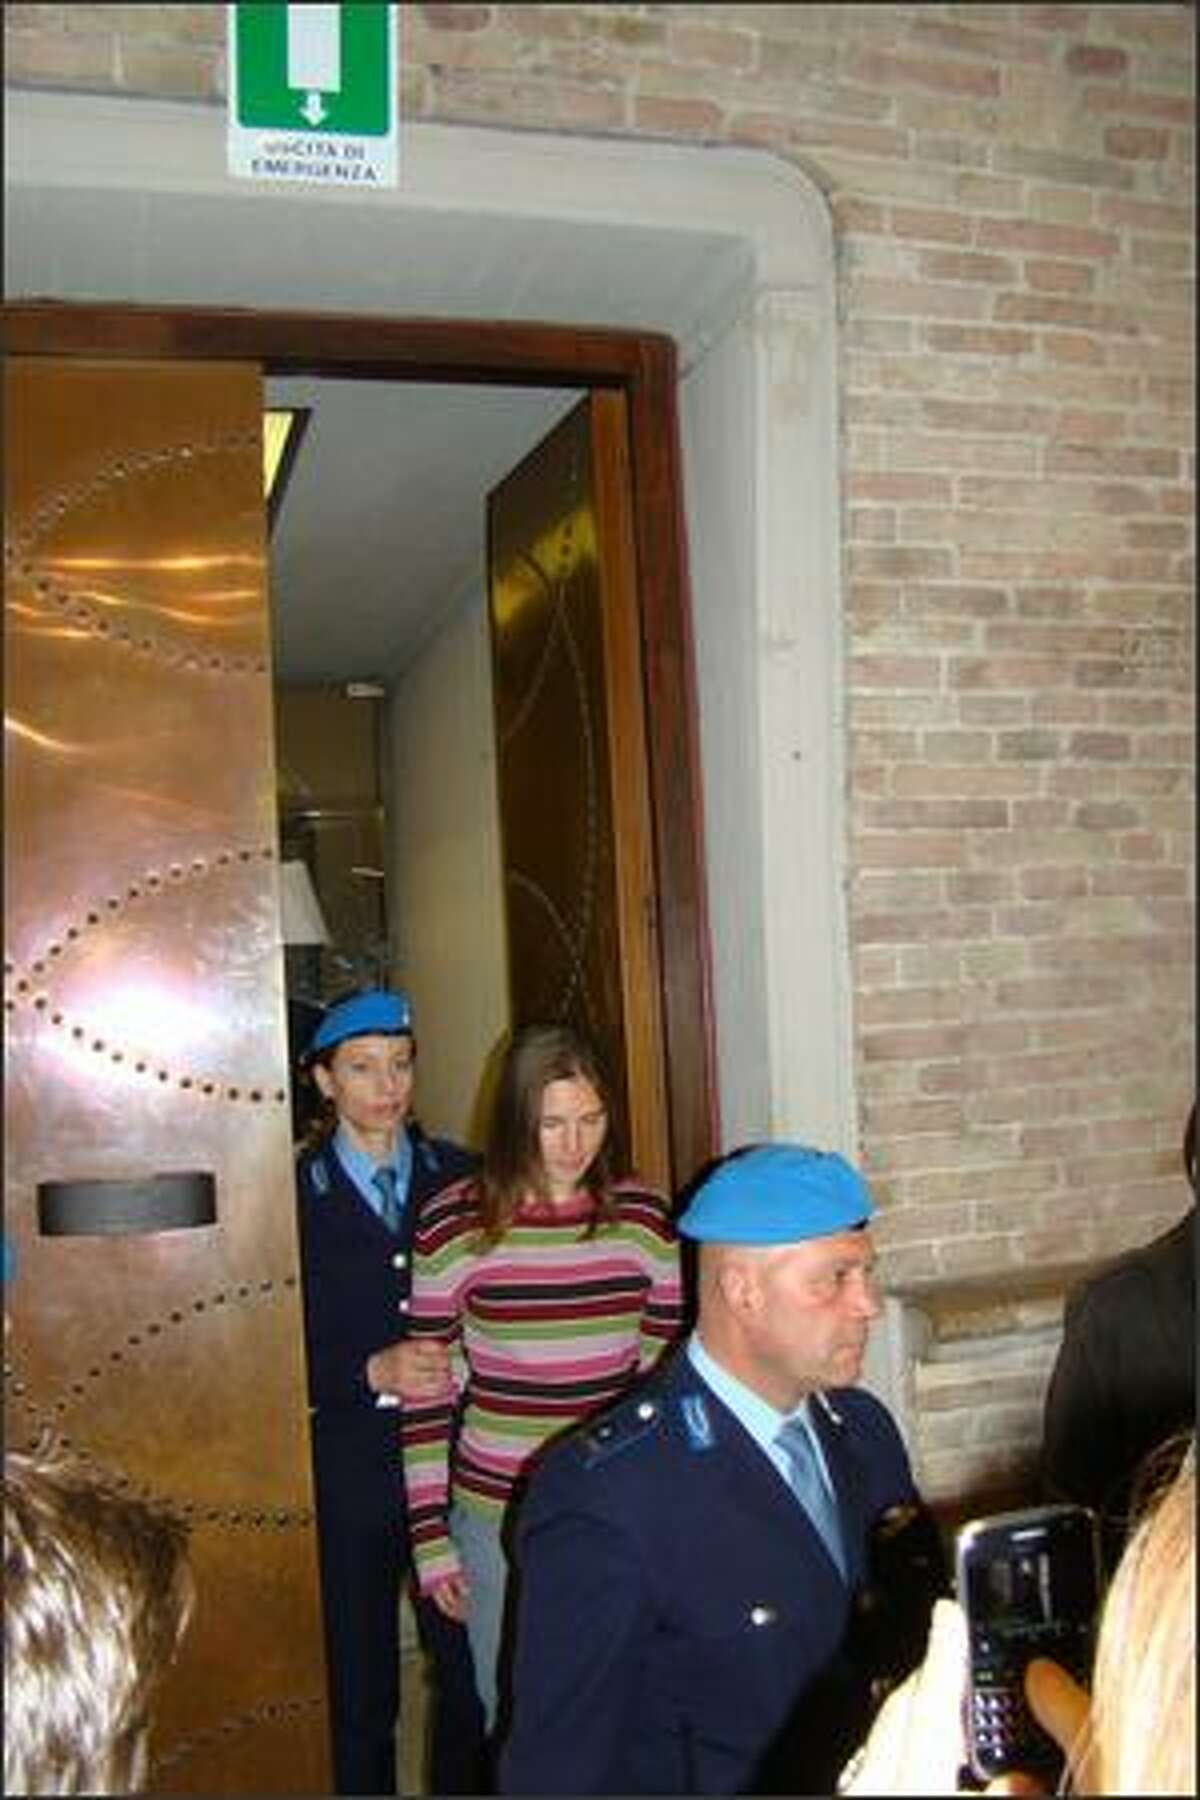 Amanda Knox enters the courtroom for Friday's hearing in Perugia, Italy.